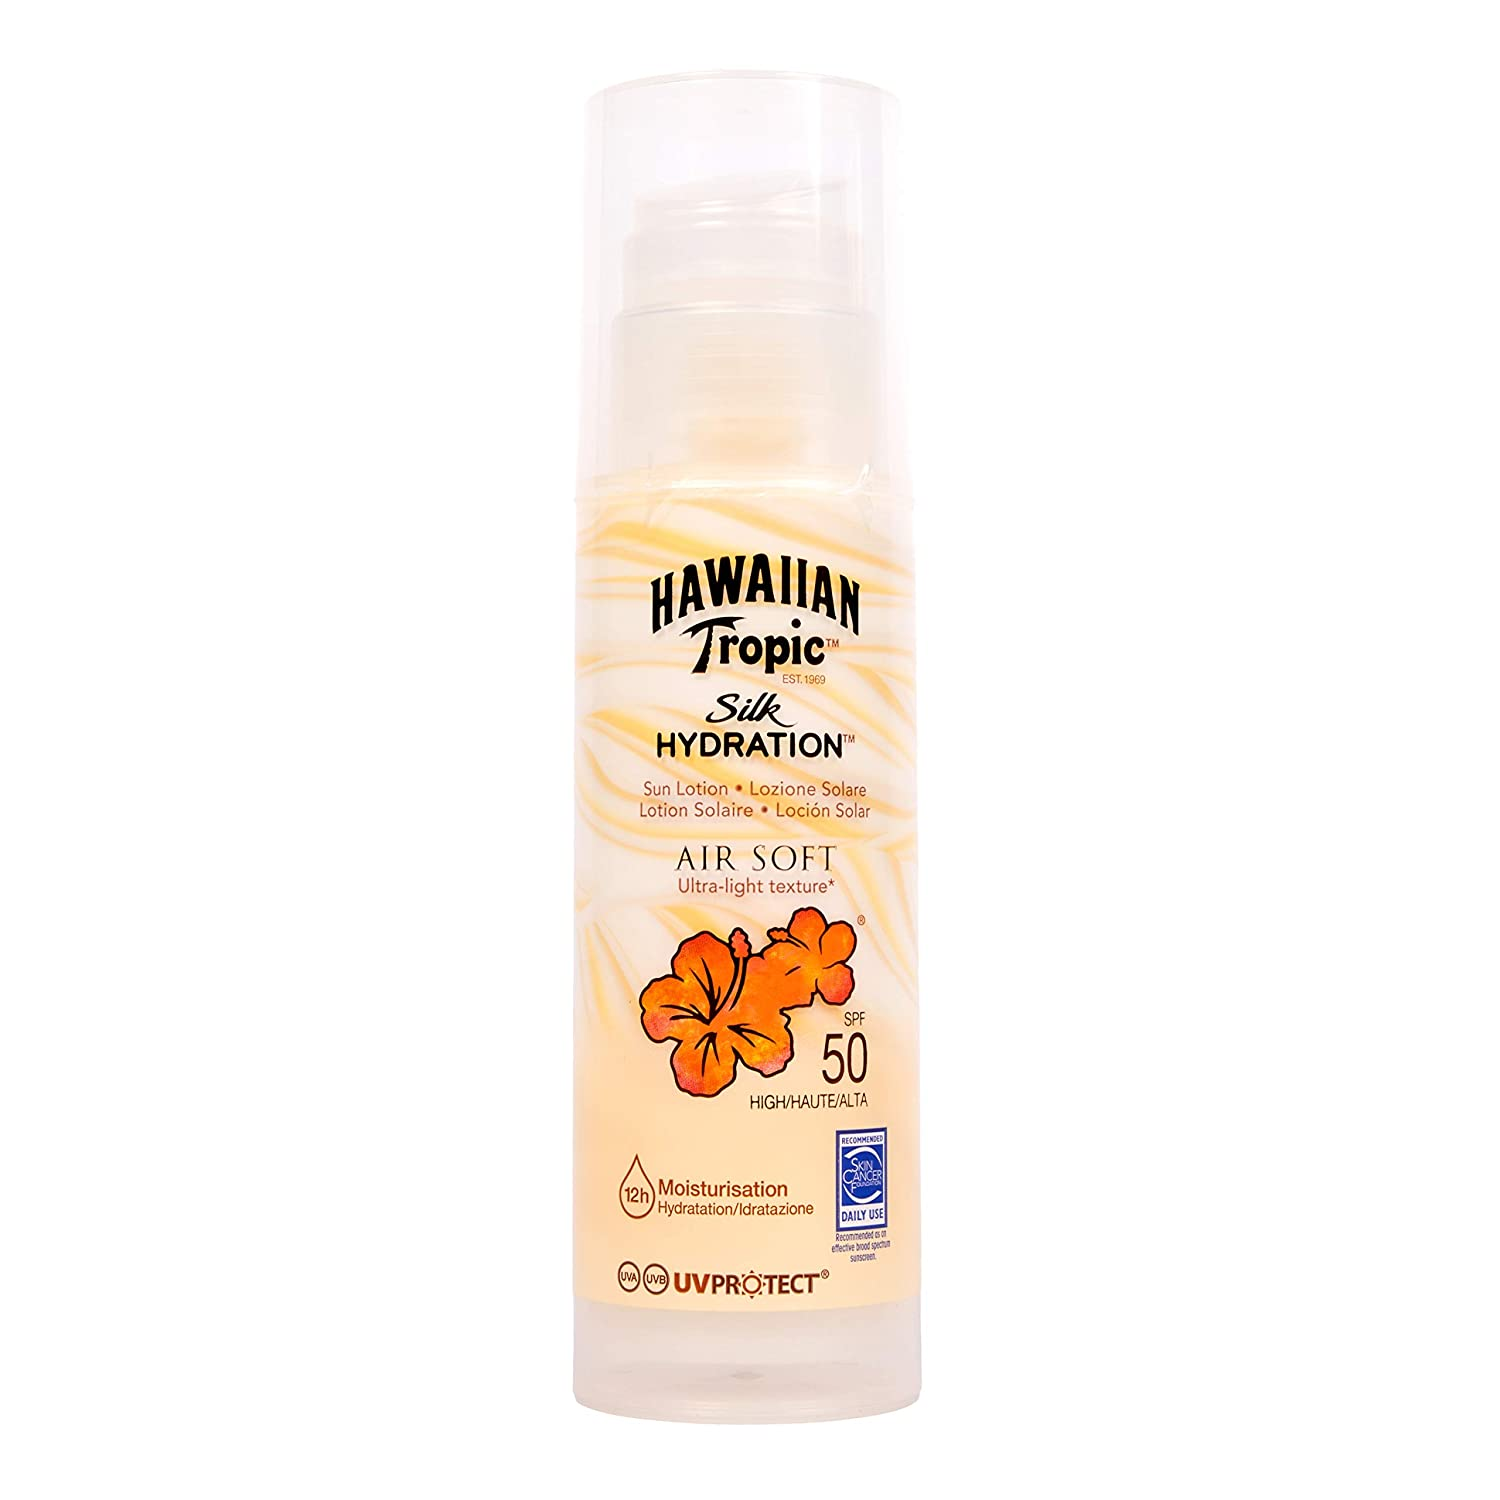 deb06b4703 Hawaiian Tropic Silk Hydration Air Soft Sun Lotion (SPF 50